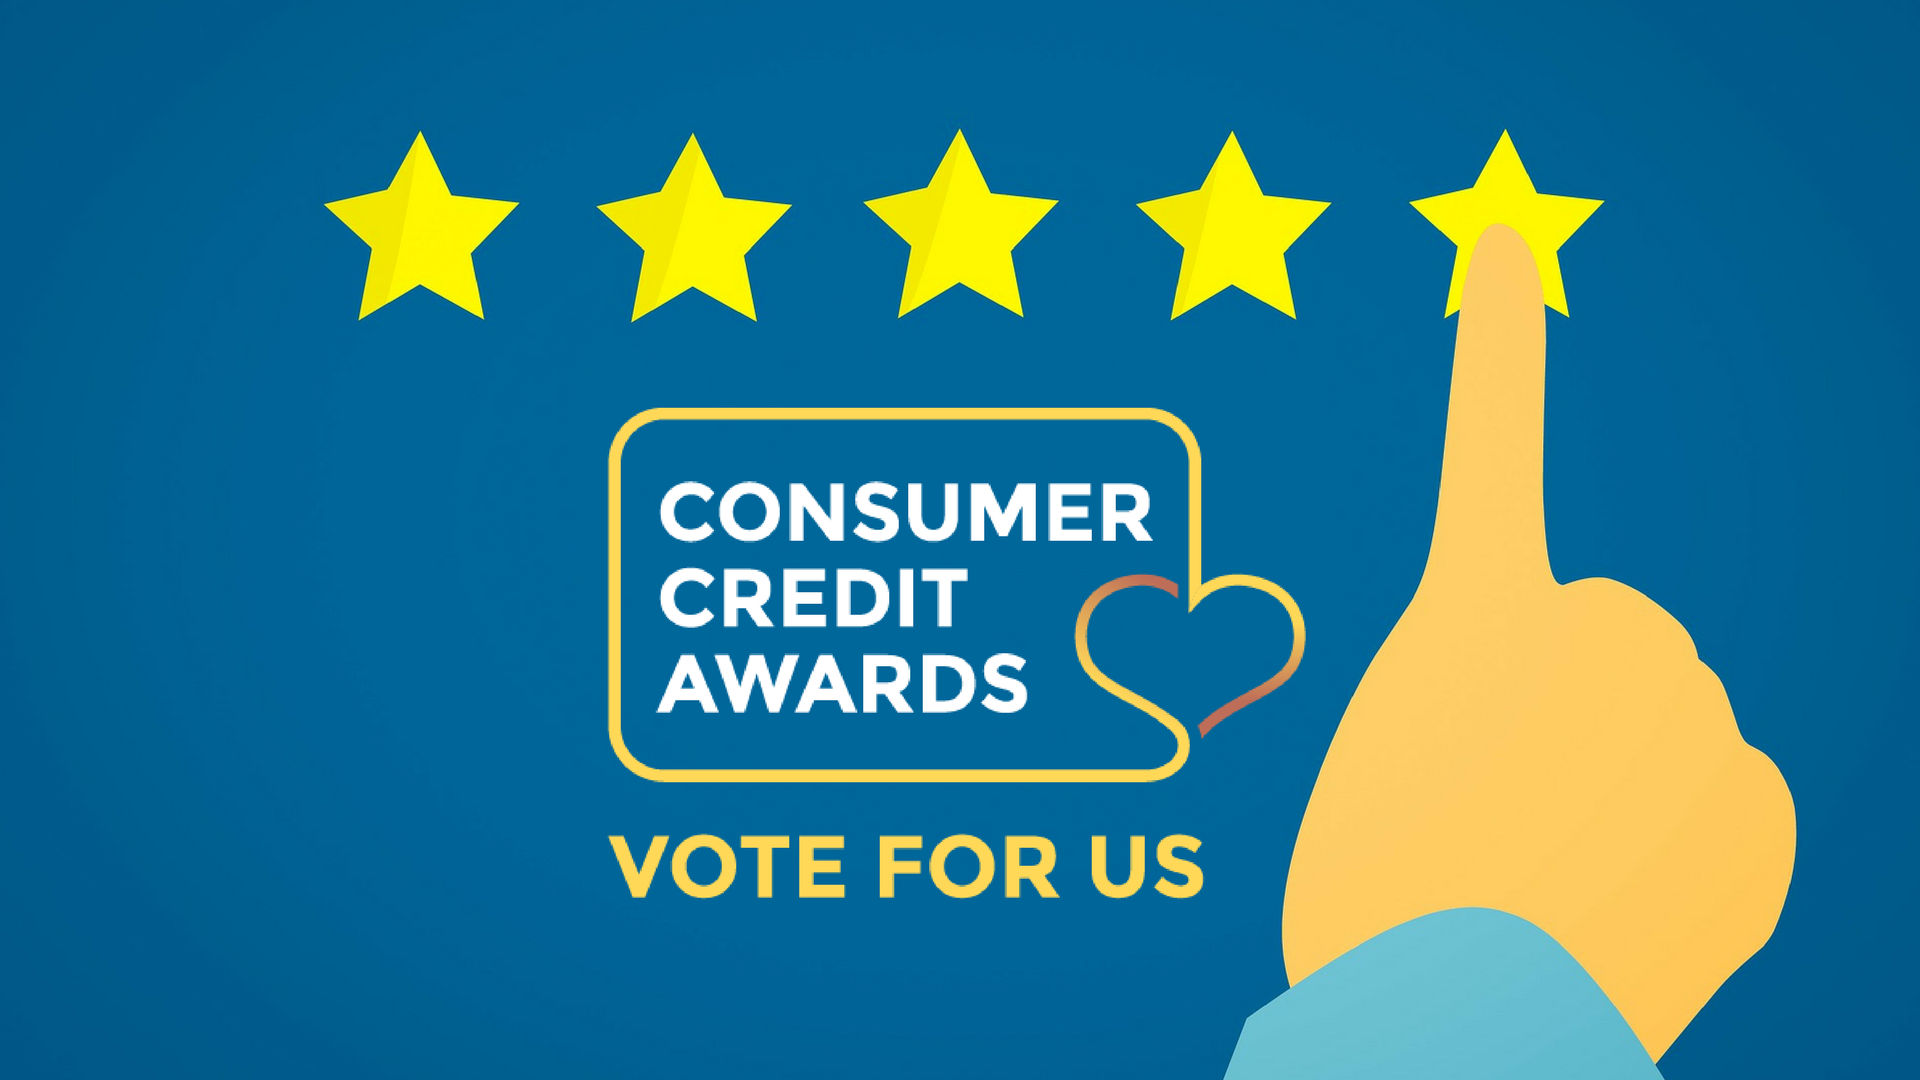 Vote for PiggyBank in the Consumer Credit Awards and you could win £1000!